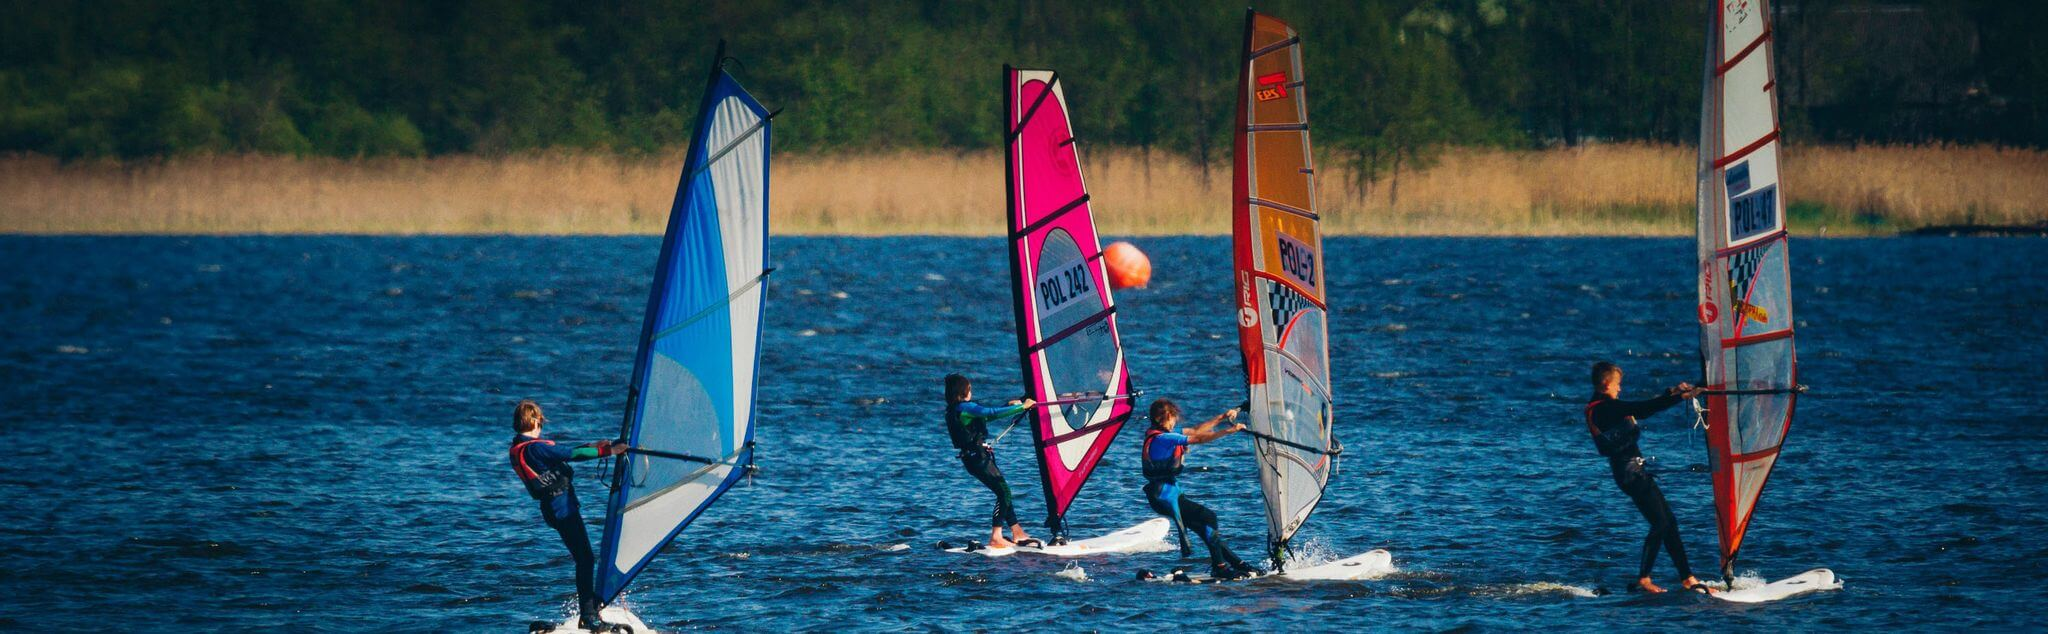 Windsurfing in Badajoz